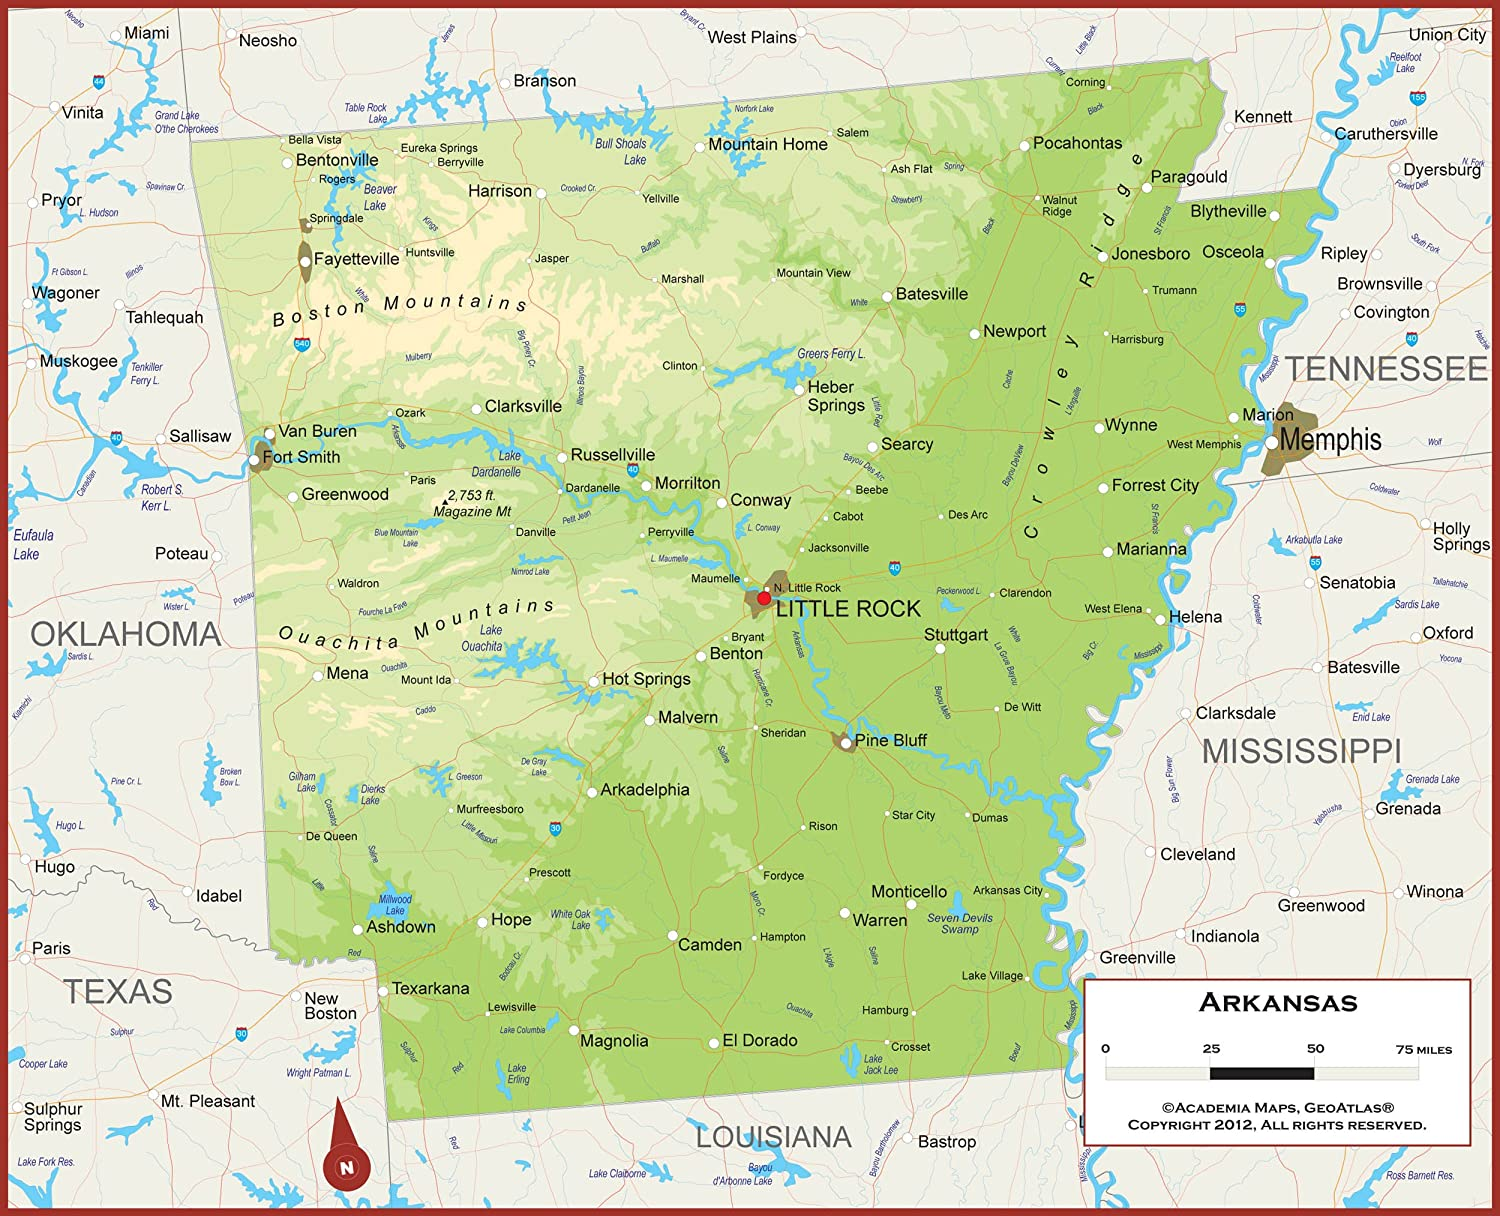 Amazon Com 36 X 29 Arkansas State Wall Map Poster With Counties Classroom Style Map With Durable Lamination Safe For Use With Wet Dry Erase Marker Brass Eyelets For Enhanced Durability Office Products